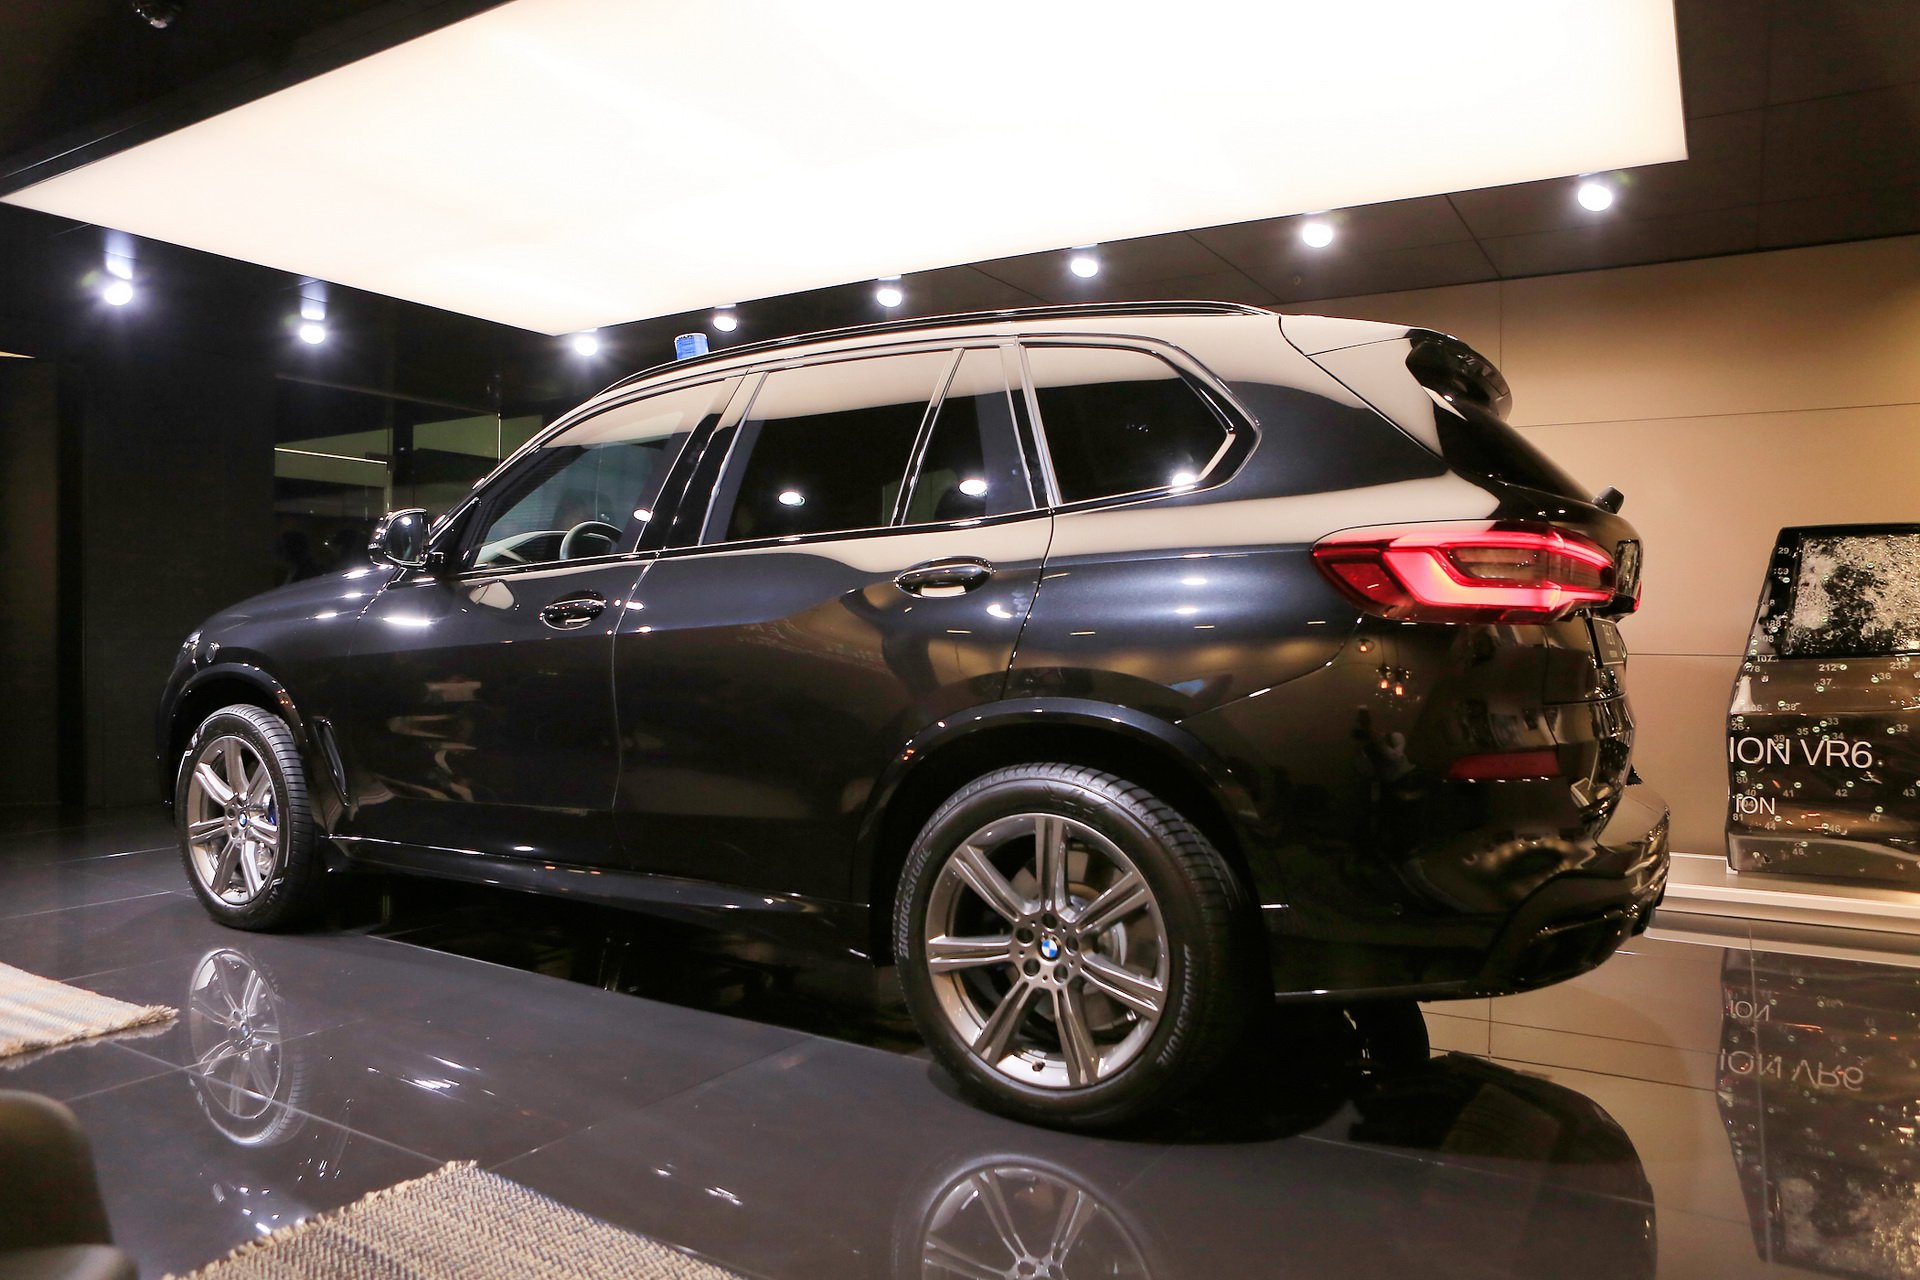 e8add95a-bmw-x5-protection-iaa-livepics-3.jpg